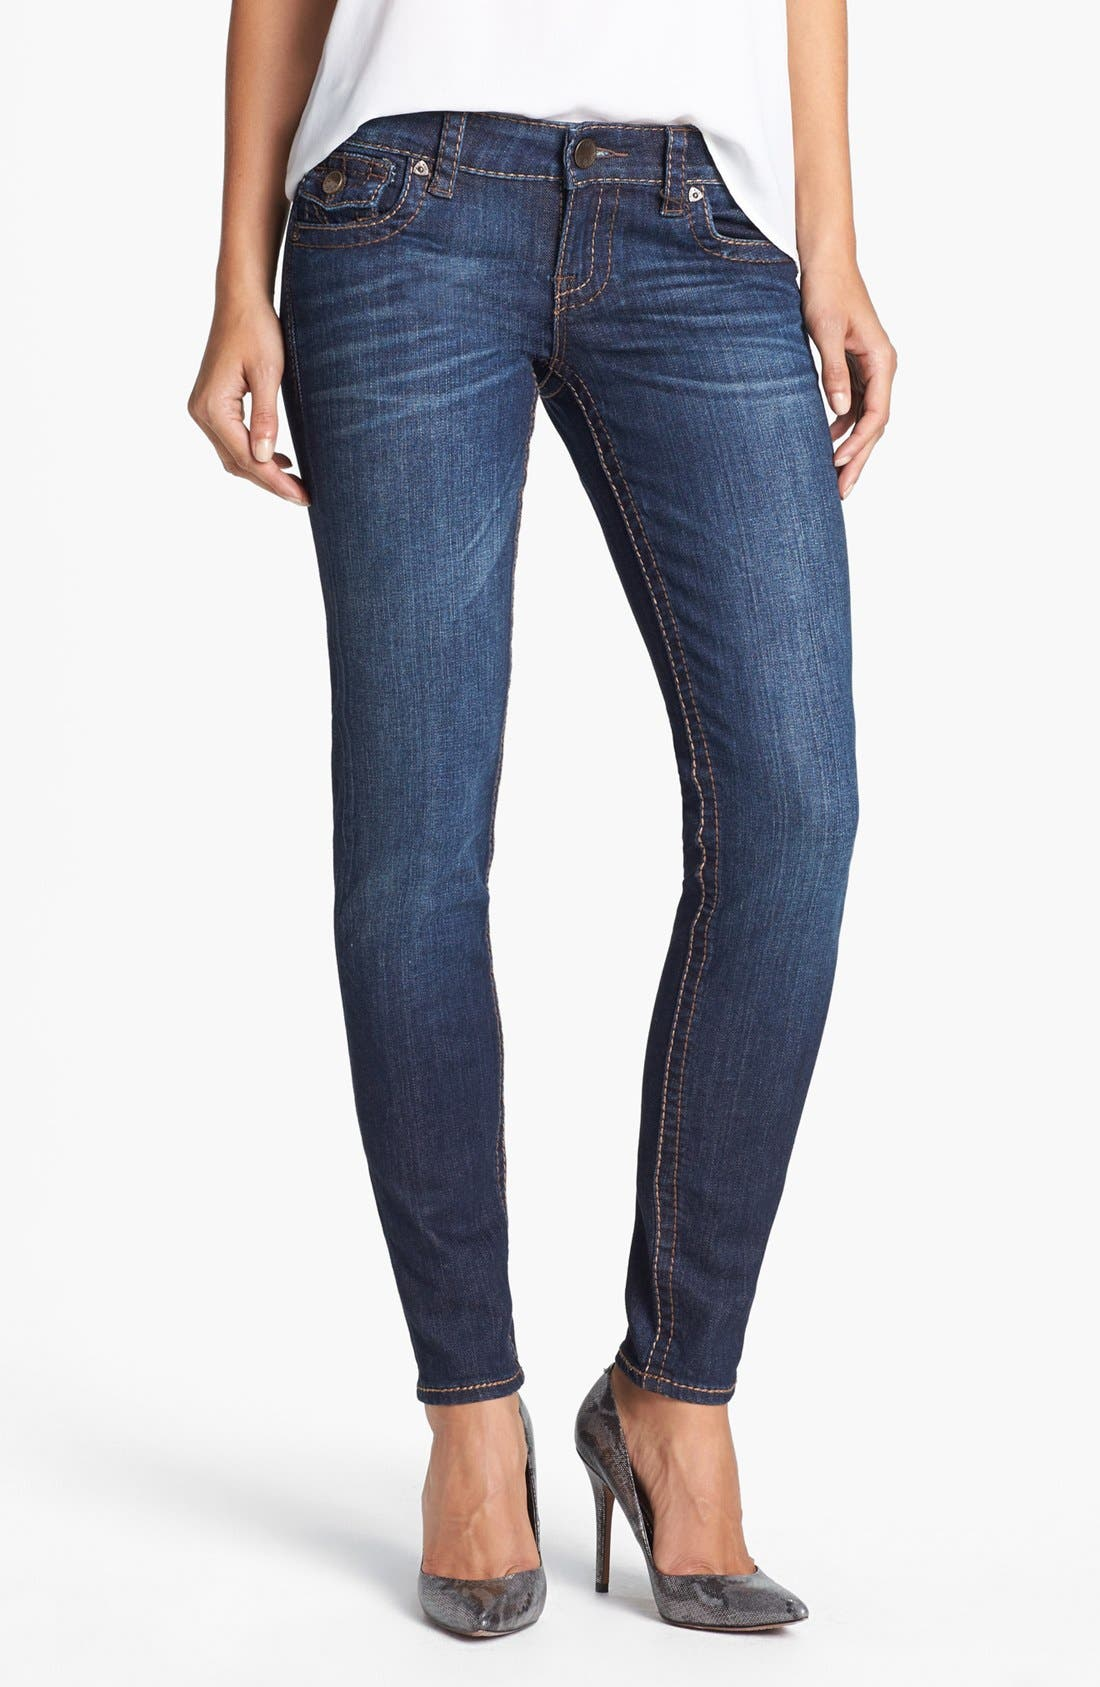 Main Image - KUT from the Kloth 'Kate' Skinny Jeans (Cared)